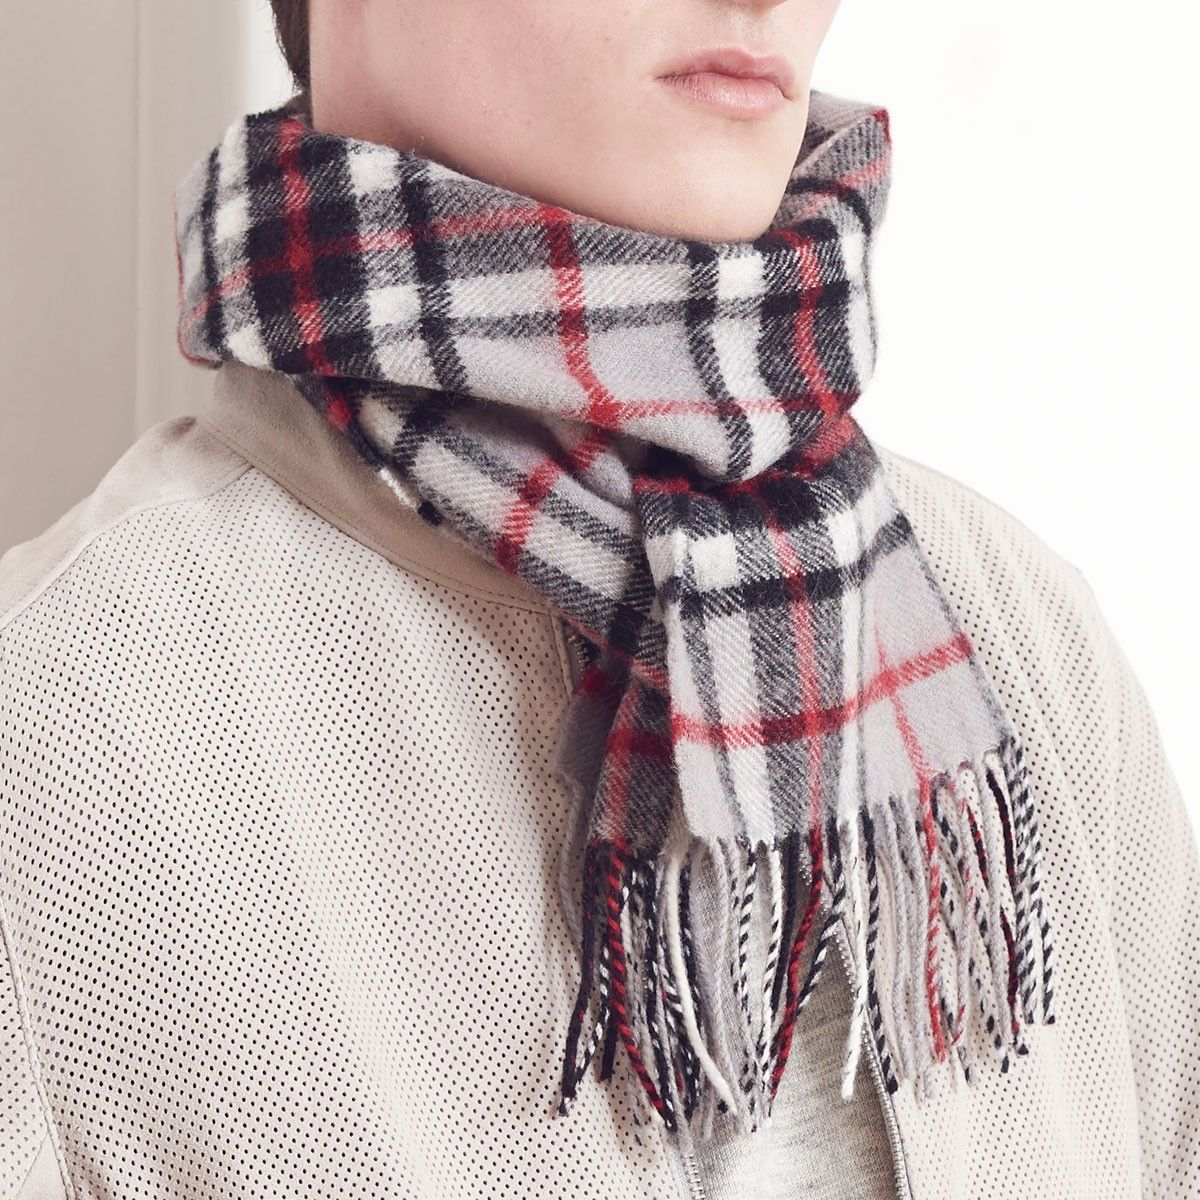 These scarves are made from pure 100% lambswool, they are lightweight, soft and cosy. Scarf Dimensions: 180cm x 25cm Including Fringing. They are made in our Selkirk Mill in Scottish Borders.